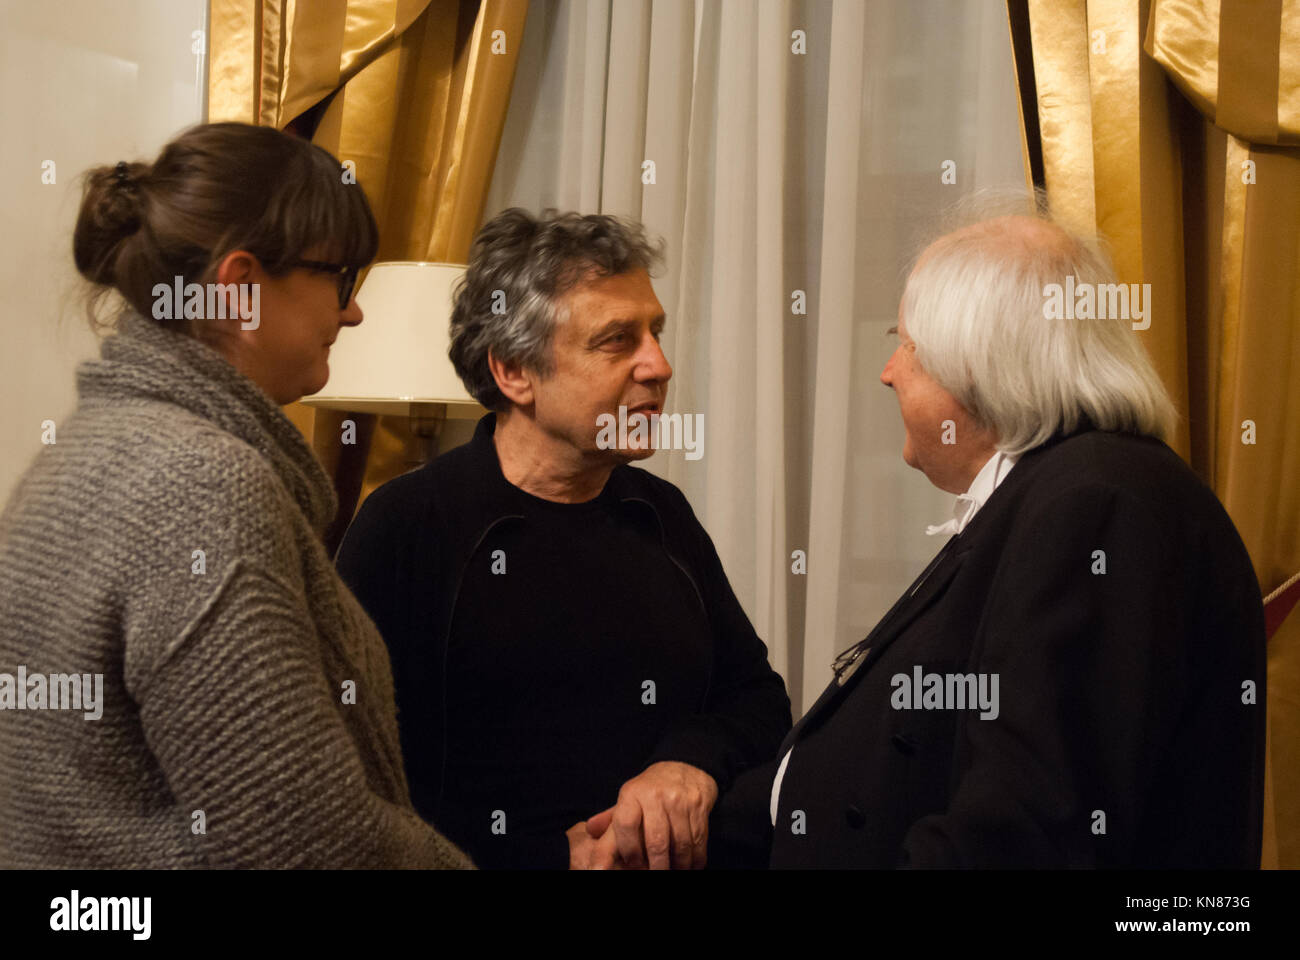 Warsaw, Poland. 10th Dec, 2017. Recognized as a the best living pianist - Grigory Sokolov talks with tonmeisters - Stock Image